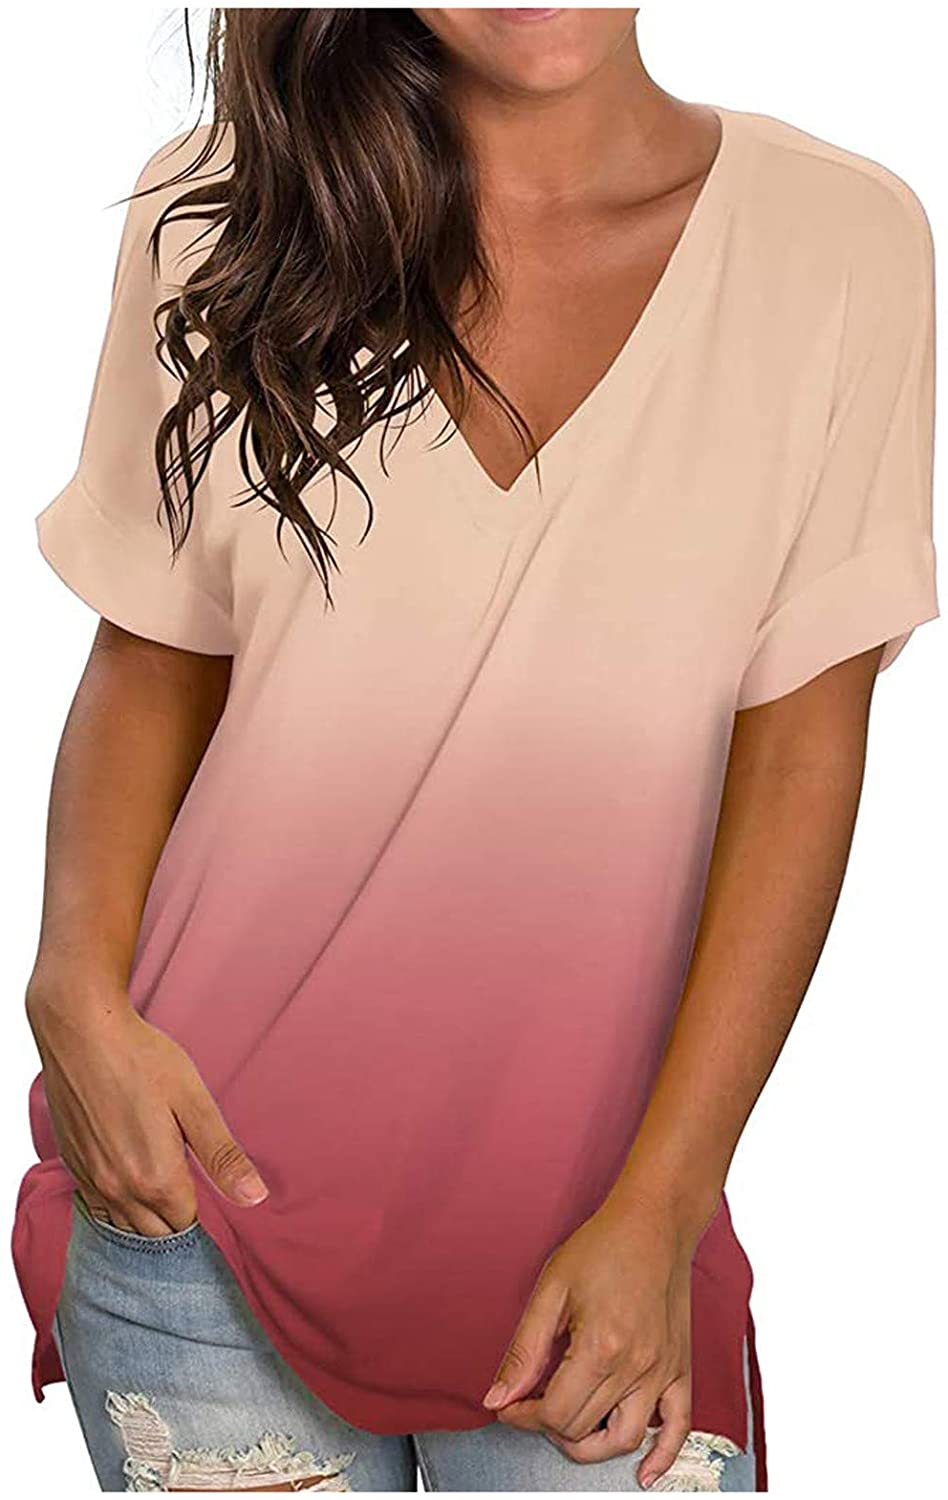 Short Sleeve Tops for Women,Womens V Neck Summer Tops Short Sleeve Henley Shirts Button Up Casual Loose Sexy Boho T Shirts Tunic Tees